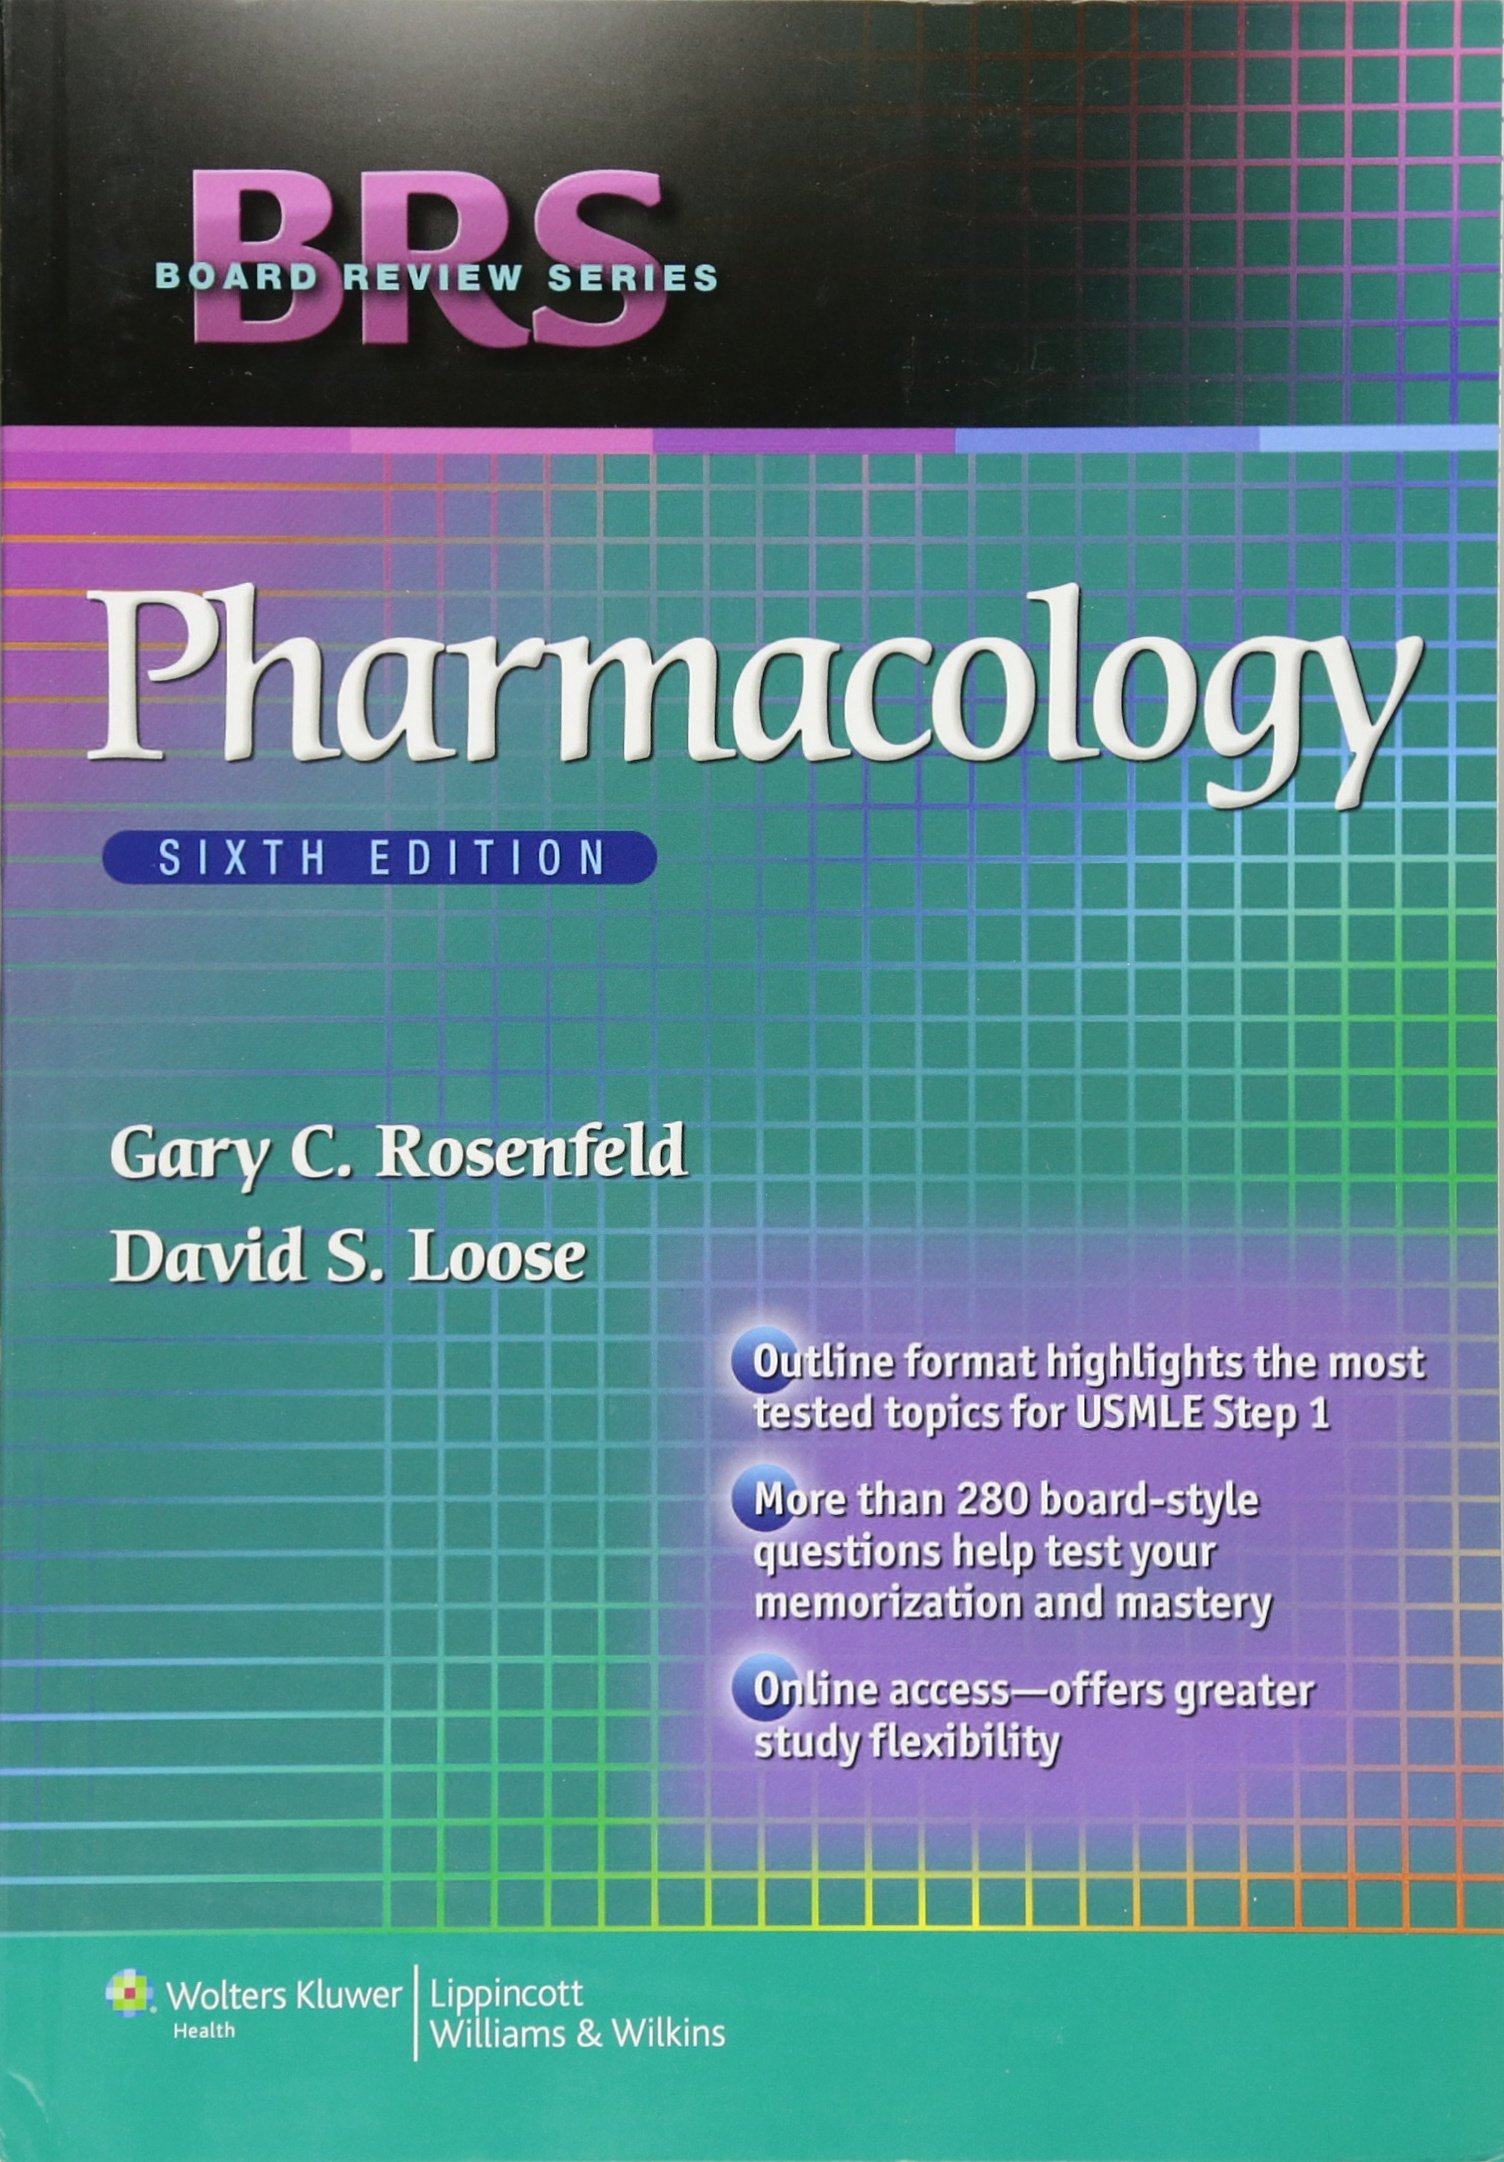 BRS Pharmacology (Board Review Series): Amazon.co.uk: Gary C ...